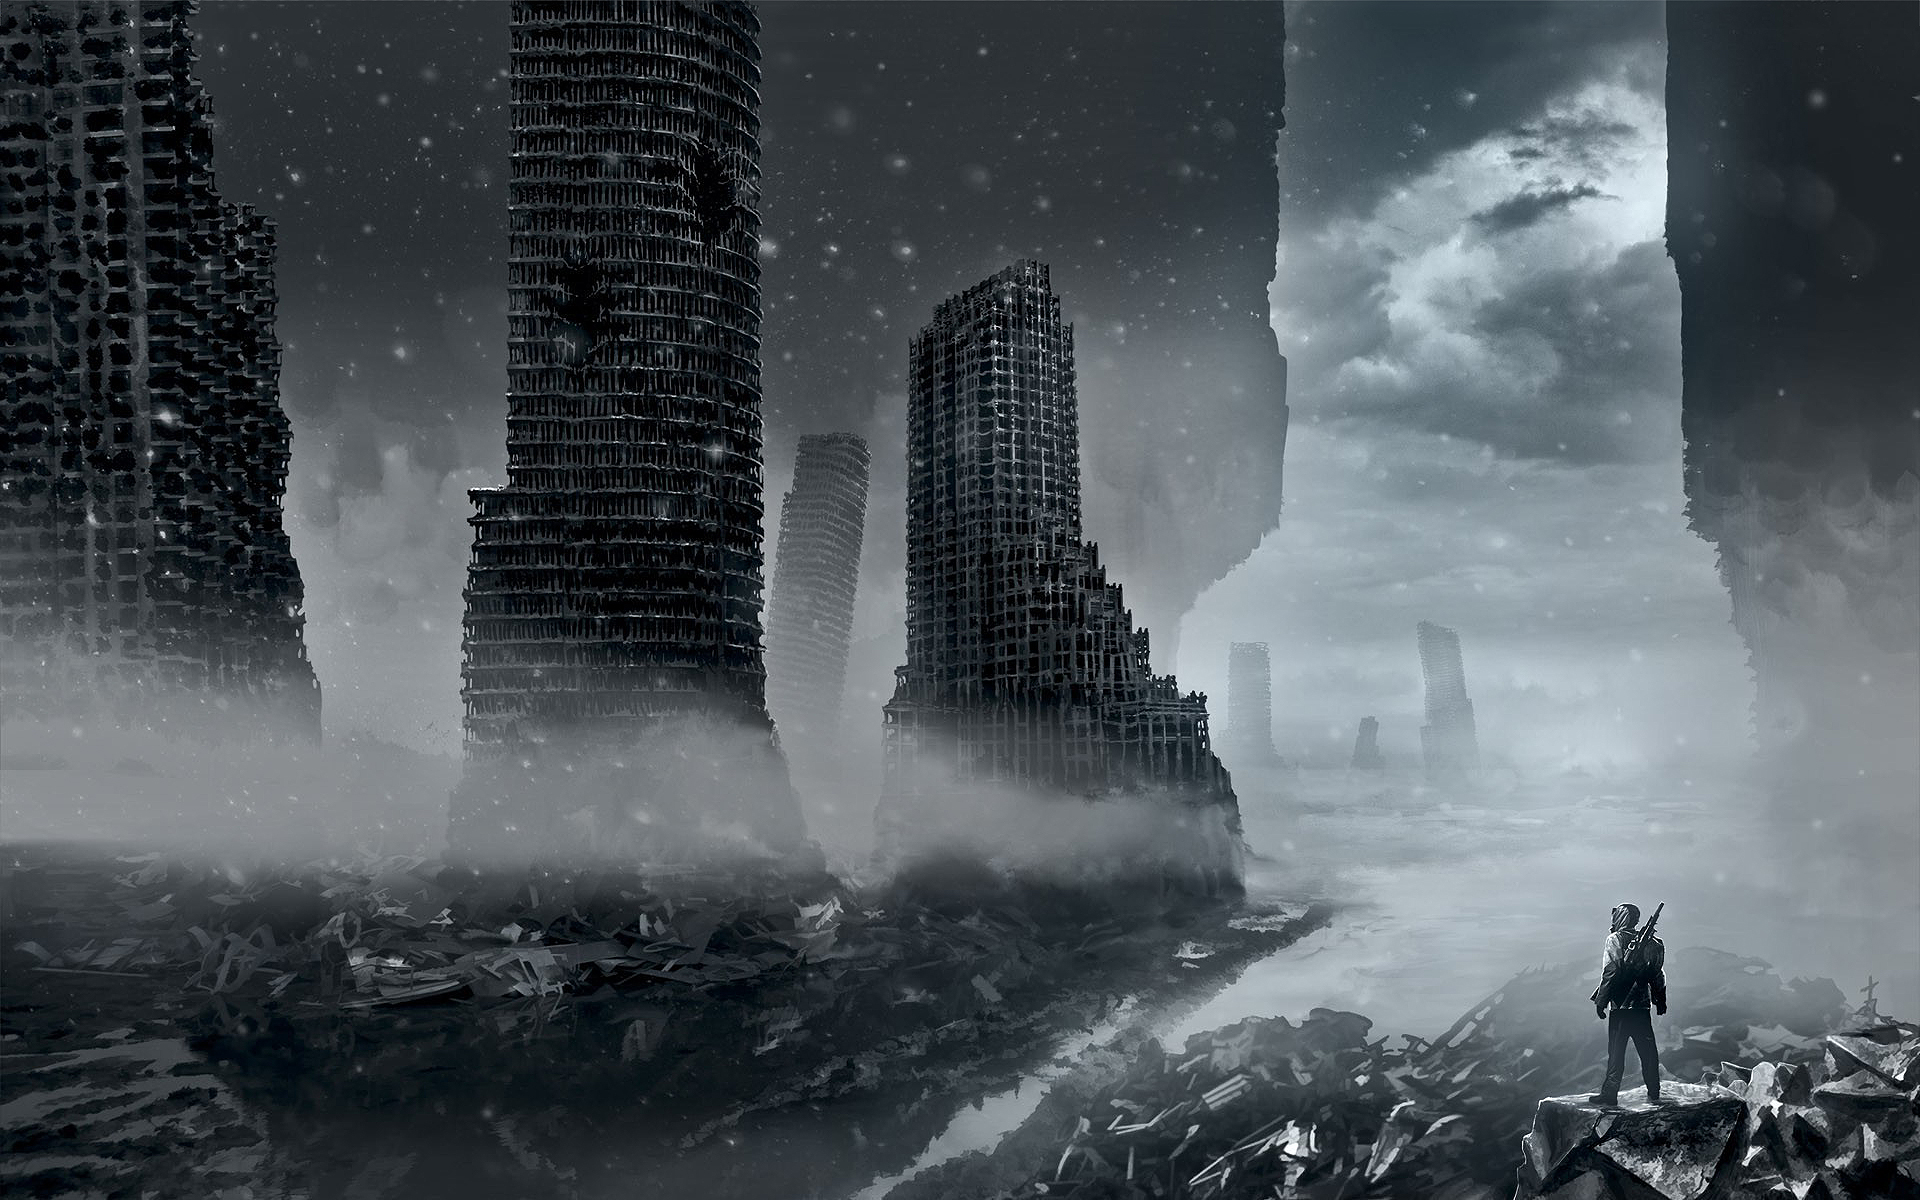 Apocalypse Art Wallpapers Pictures Photos Images Wallpaper